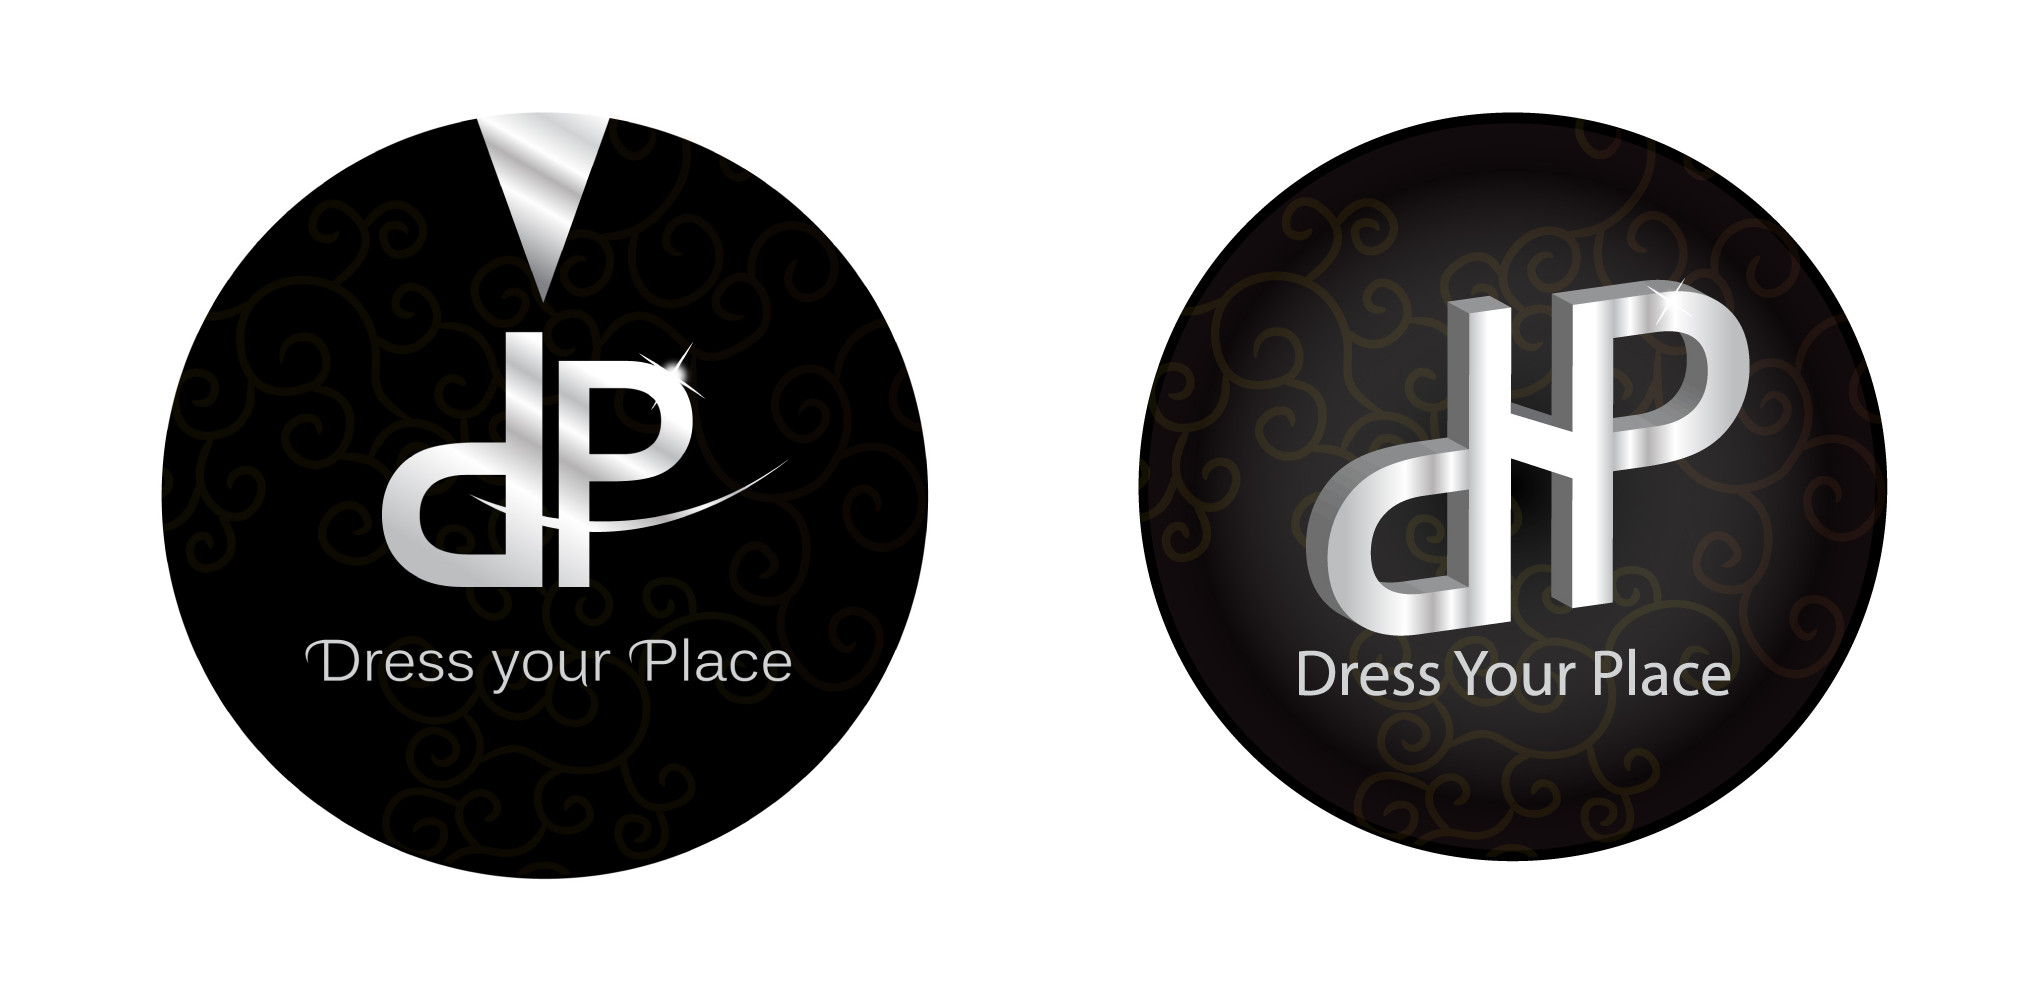 Dress your Place Logo Designs